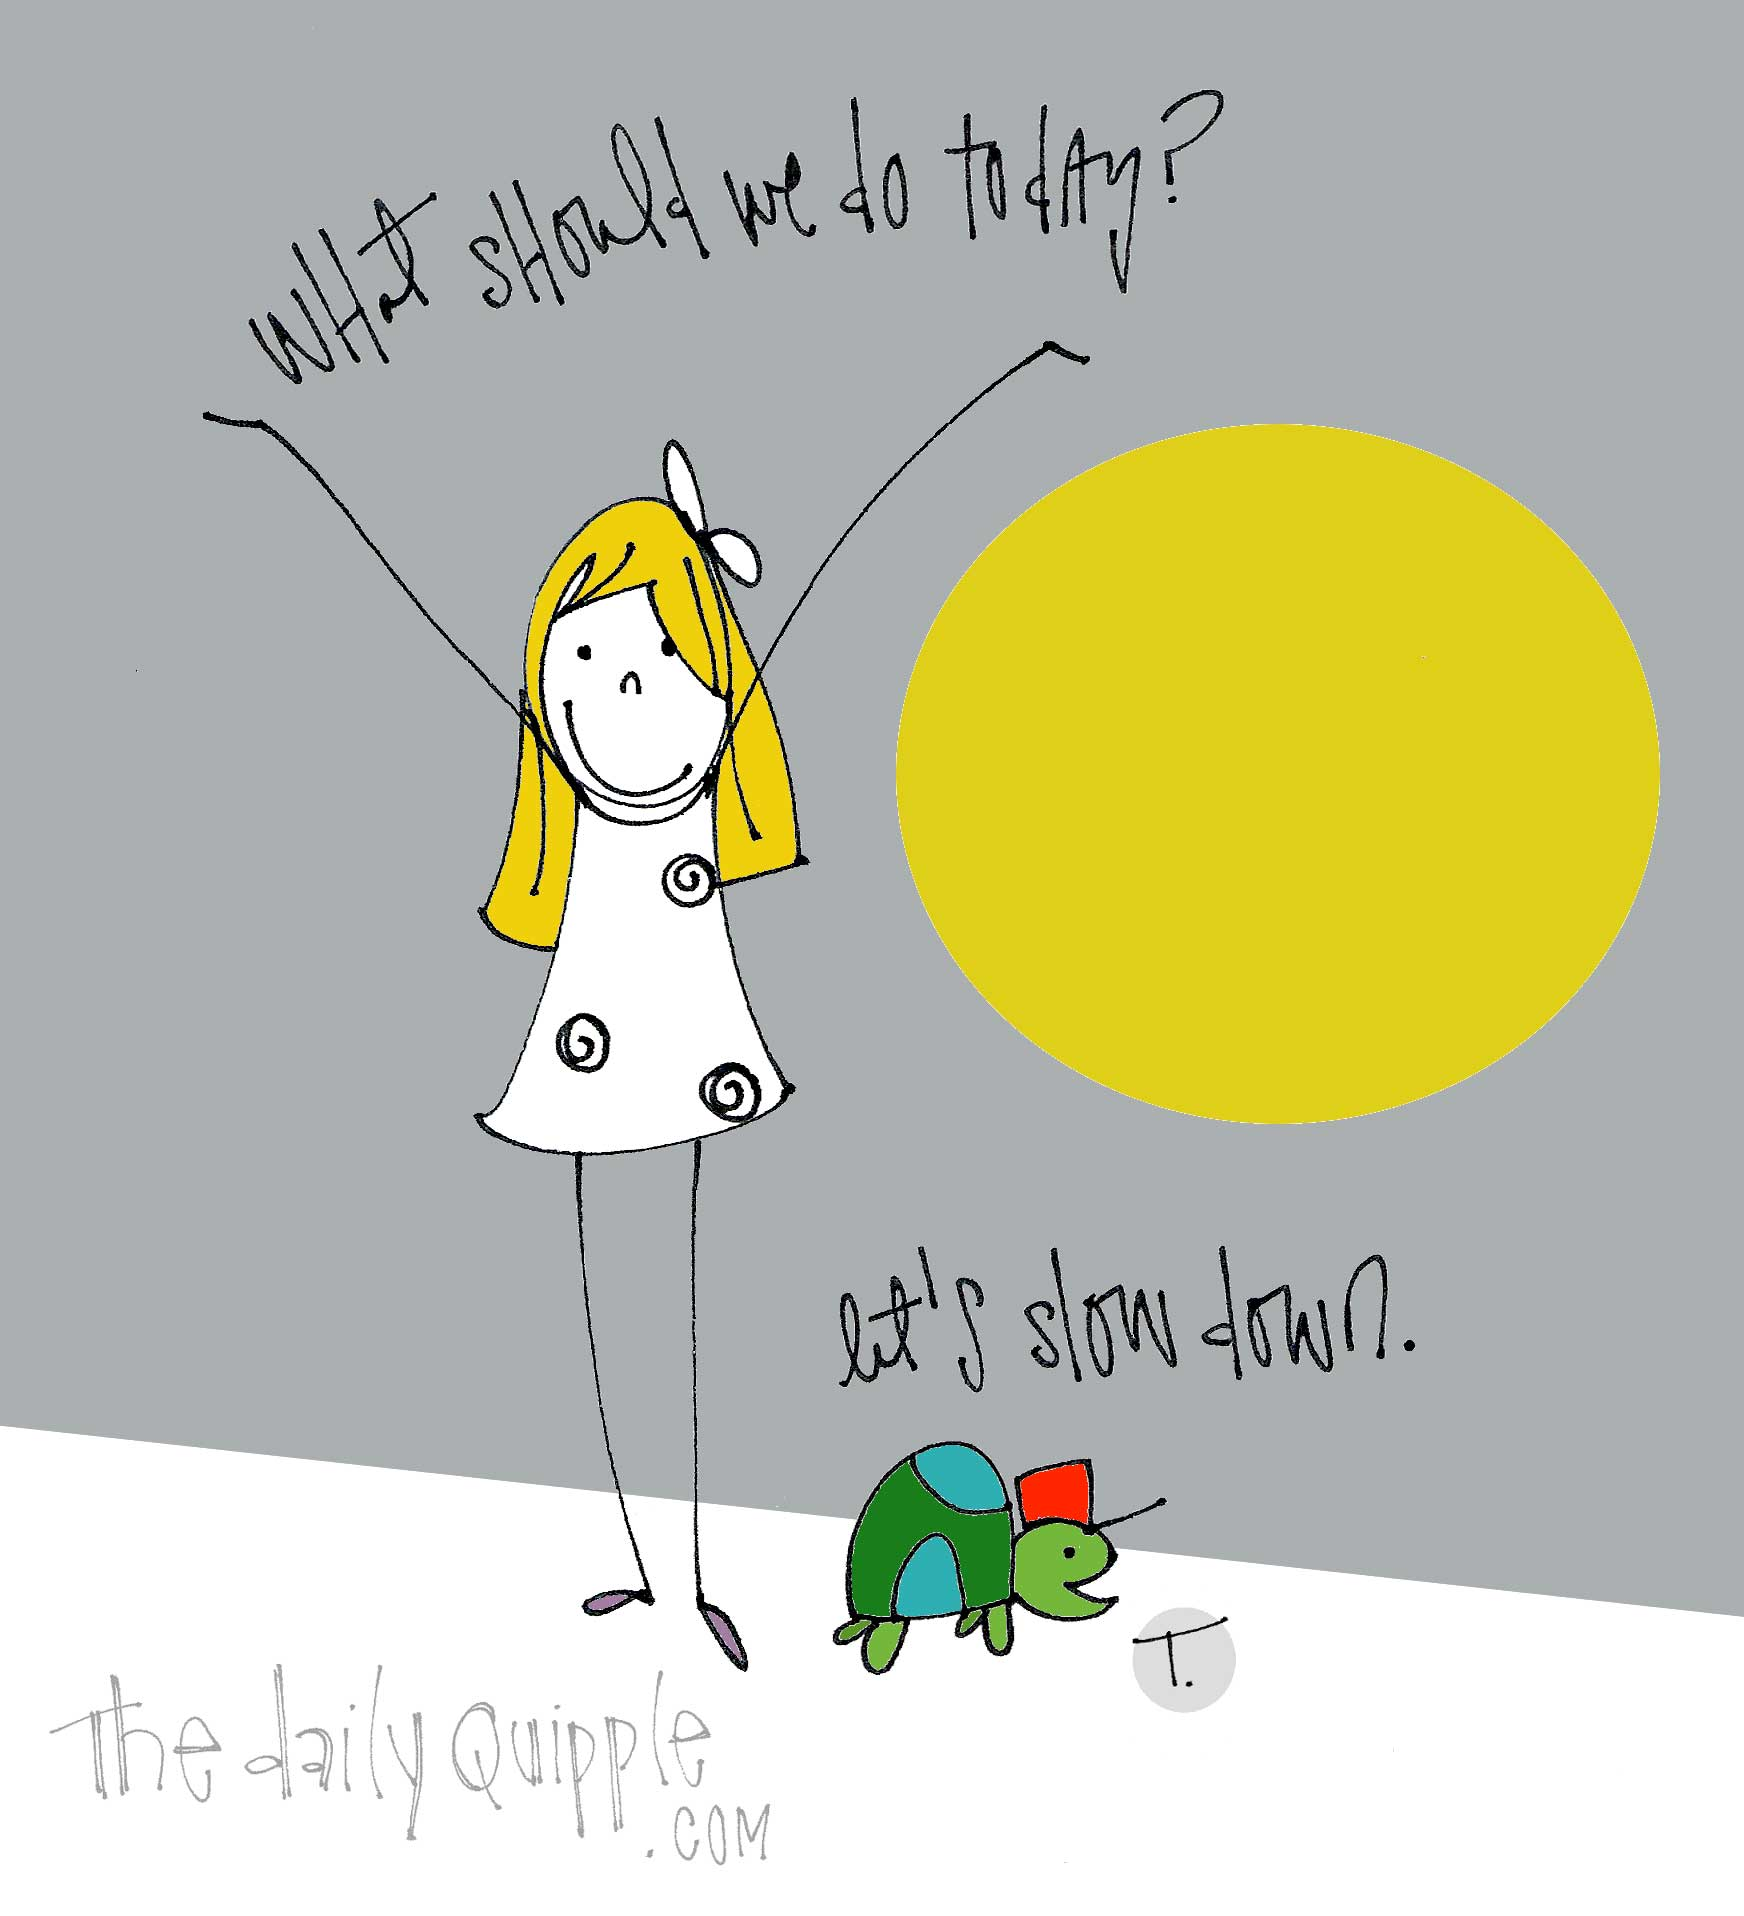 what should we do today | The Daily Quipple